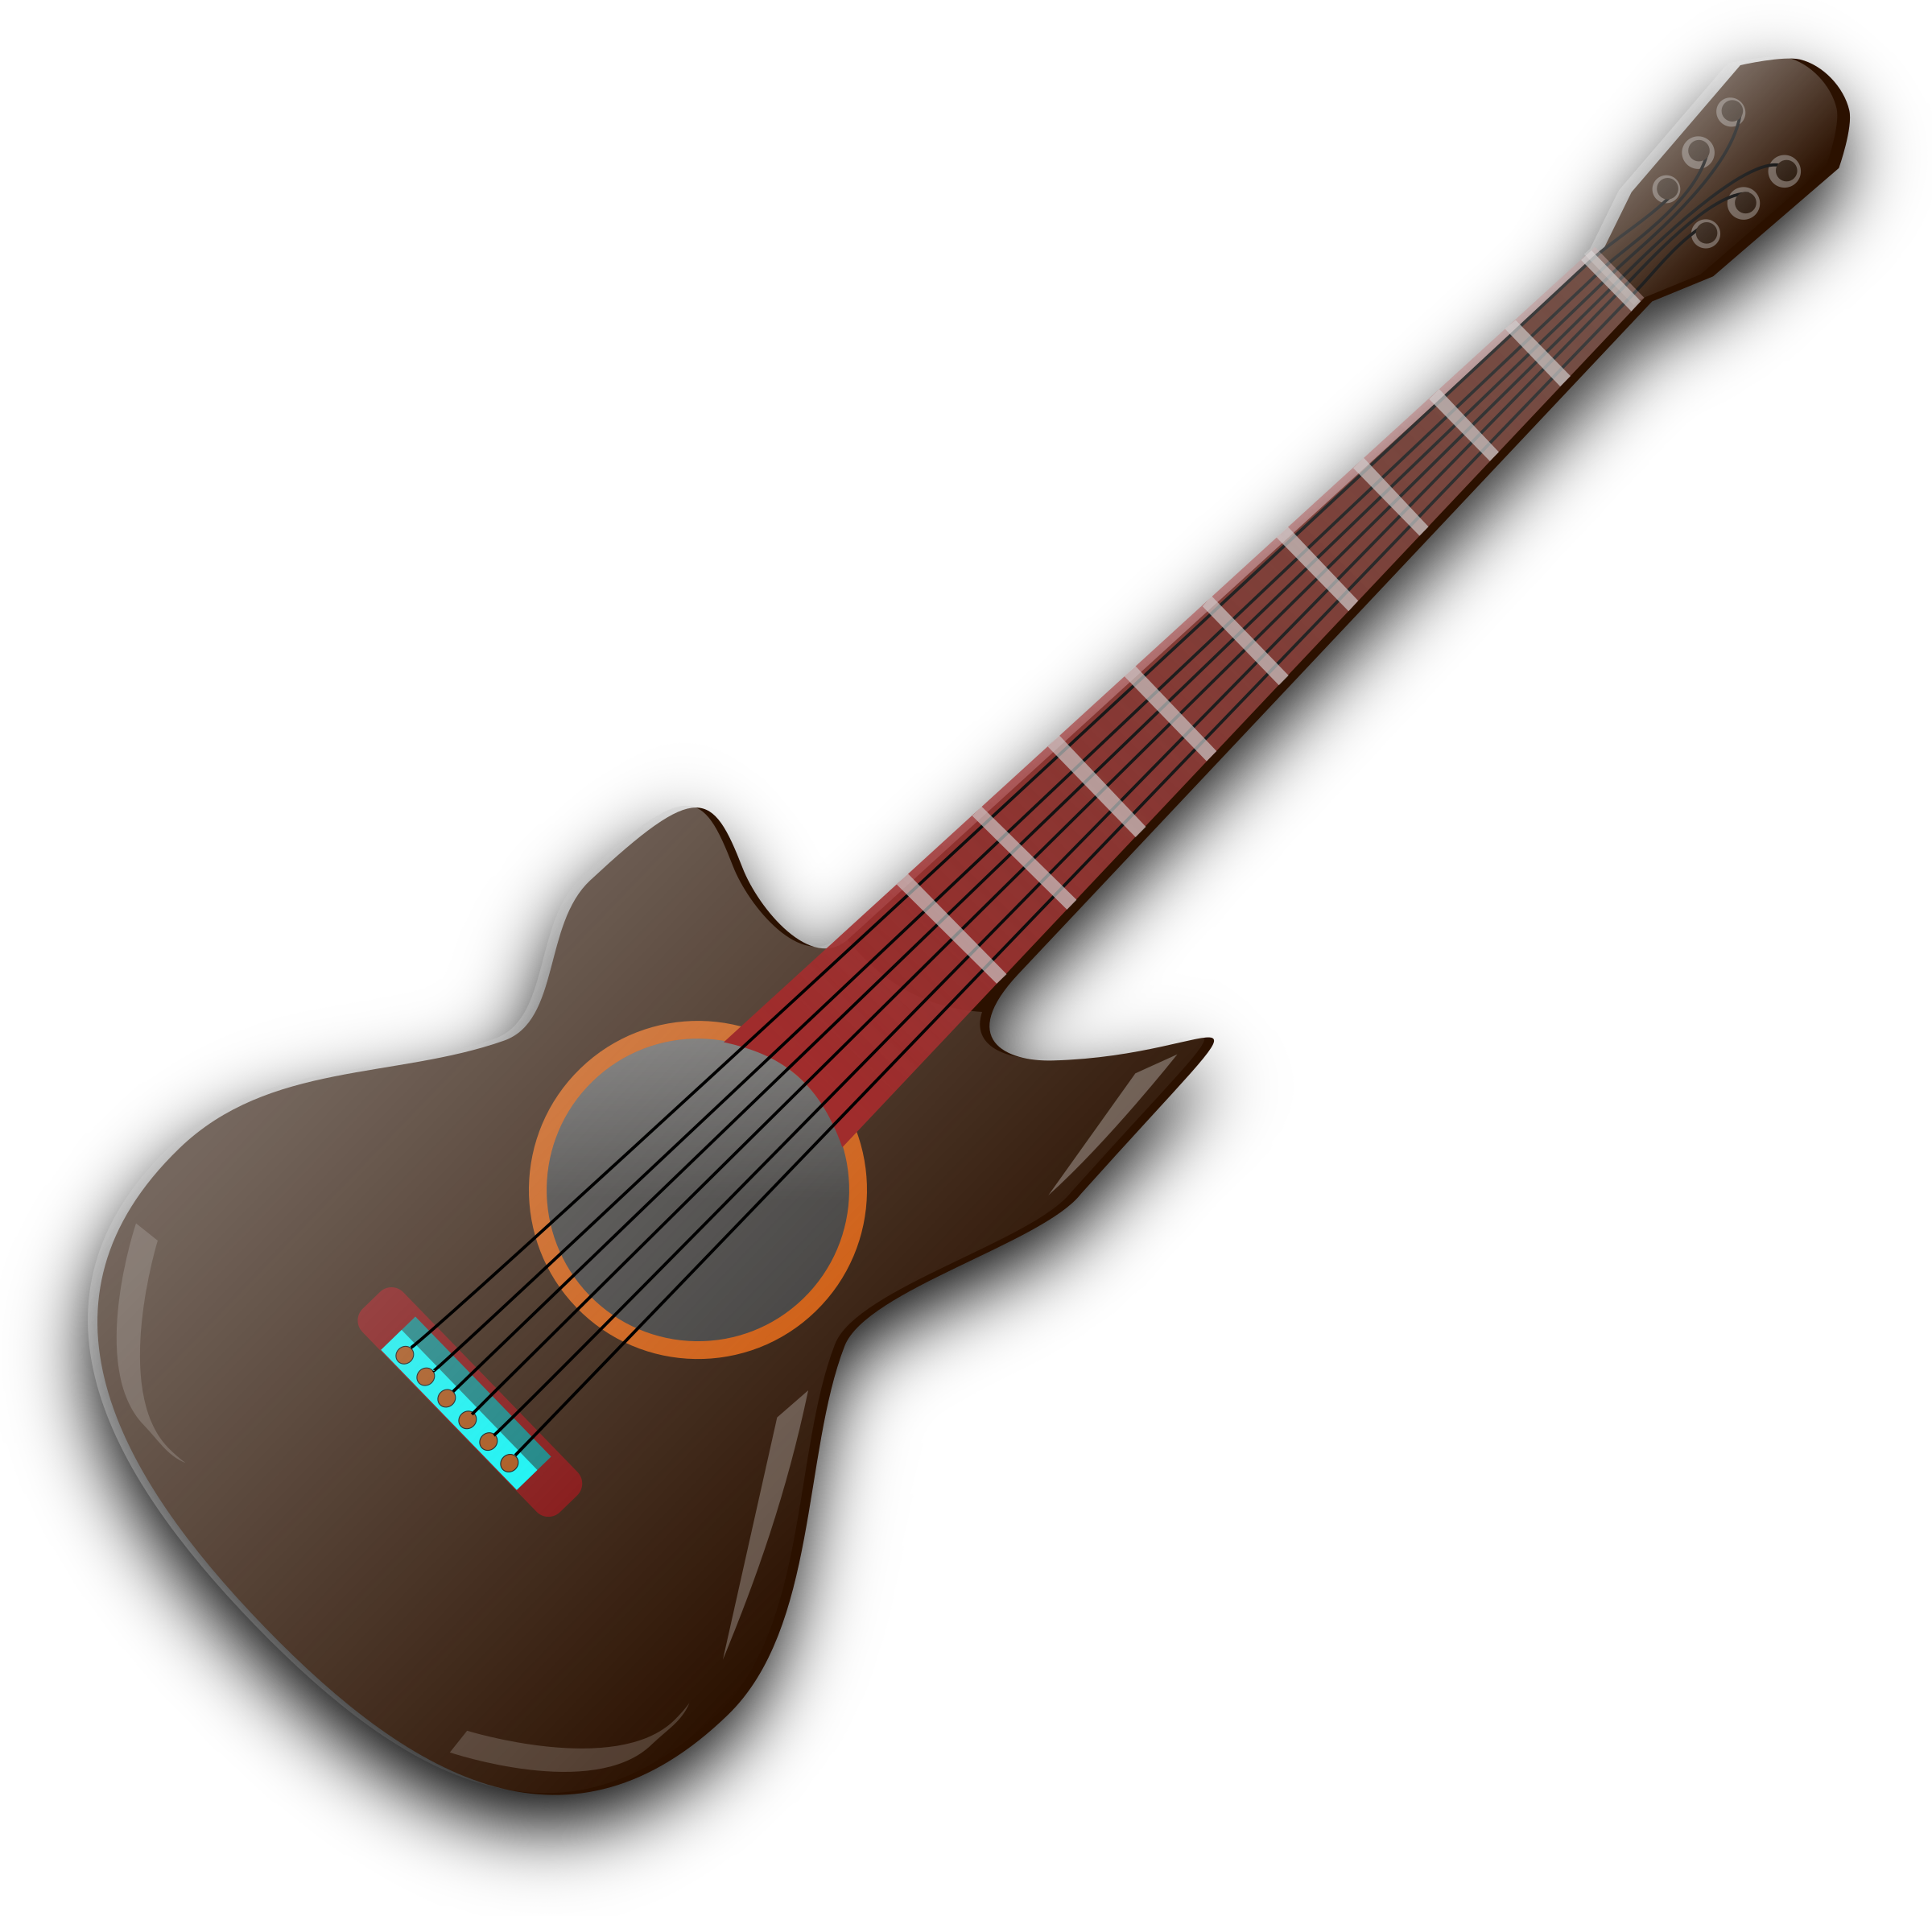 Wooden Guitar  by gsagri04